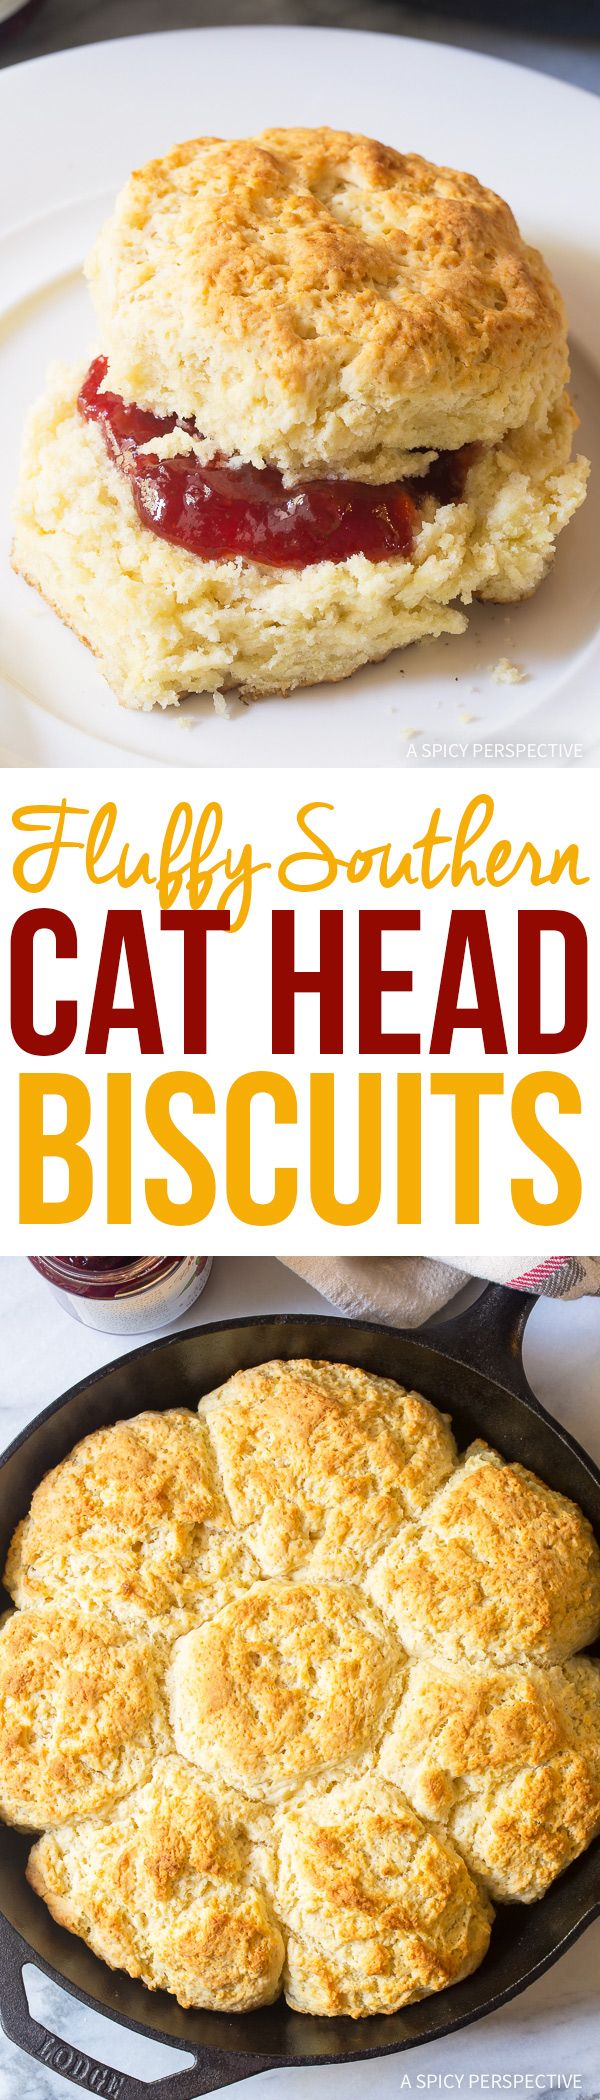 Fluffy Southern Cat Head Biscuits Recipe - The biggest, softest, most amazing biscuit recipe with buttery golden tops! Flaky on the outside, pillowy on the inside! via @spicyperspectiv